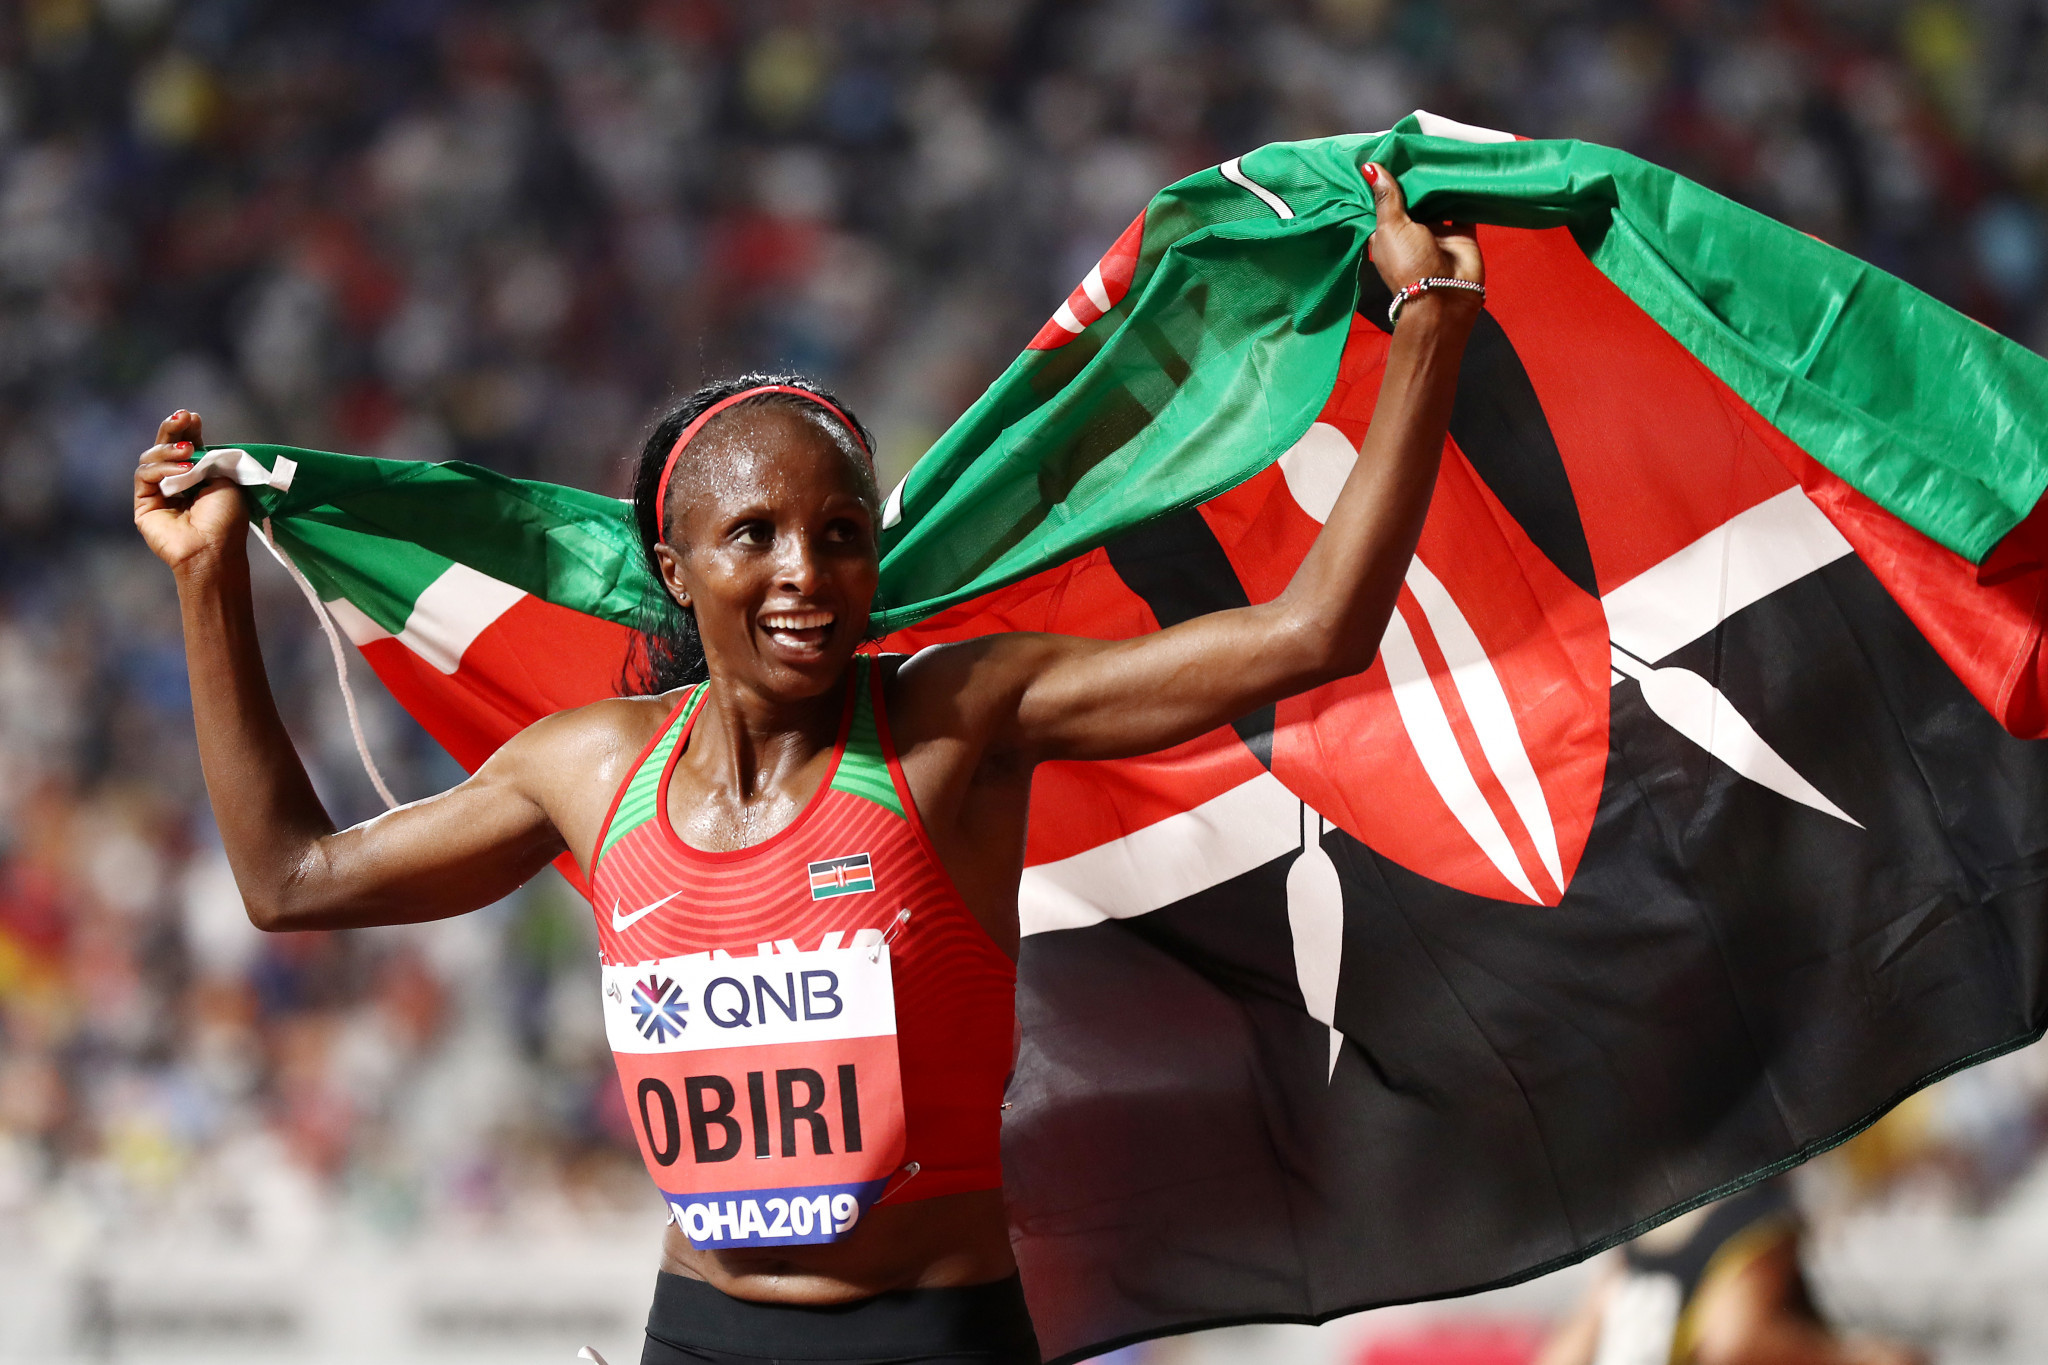 Kenya's athletes have performing superbly at the IAAF World Championships in Doha and are currently second in the medals table behind only the United States with four gold ©Getty Images